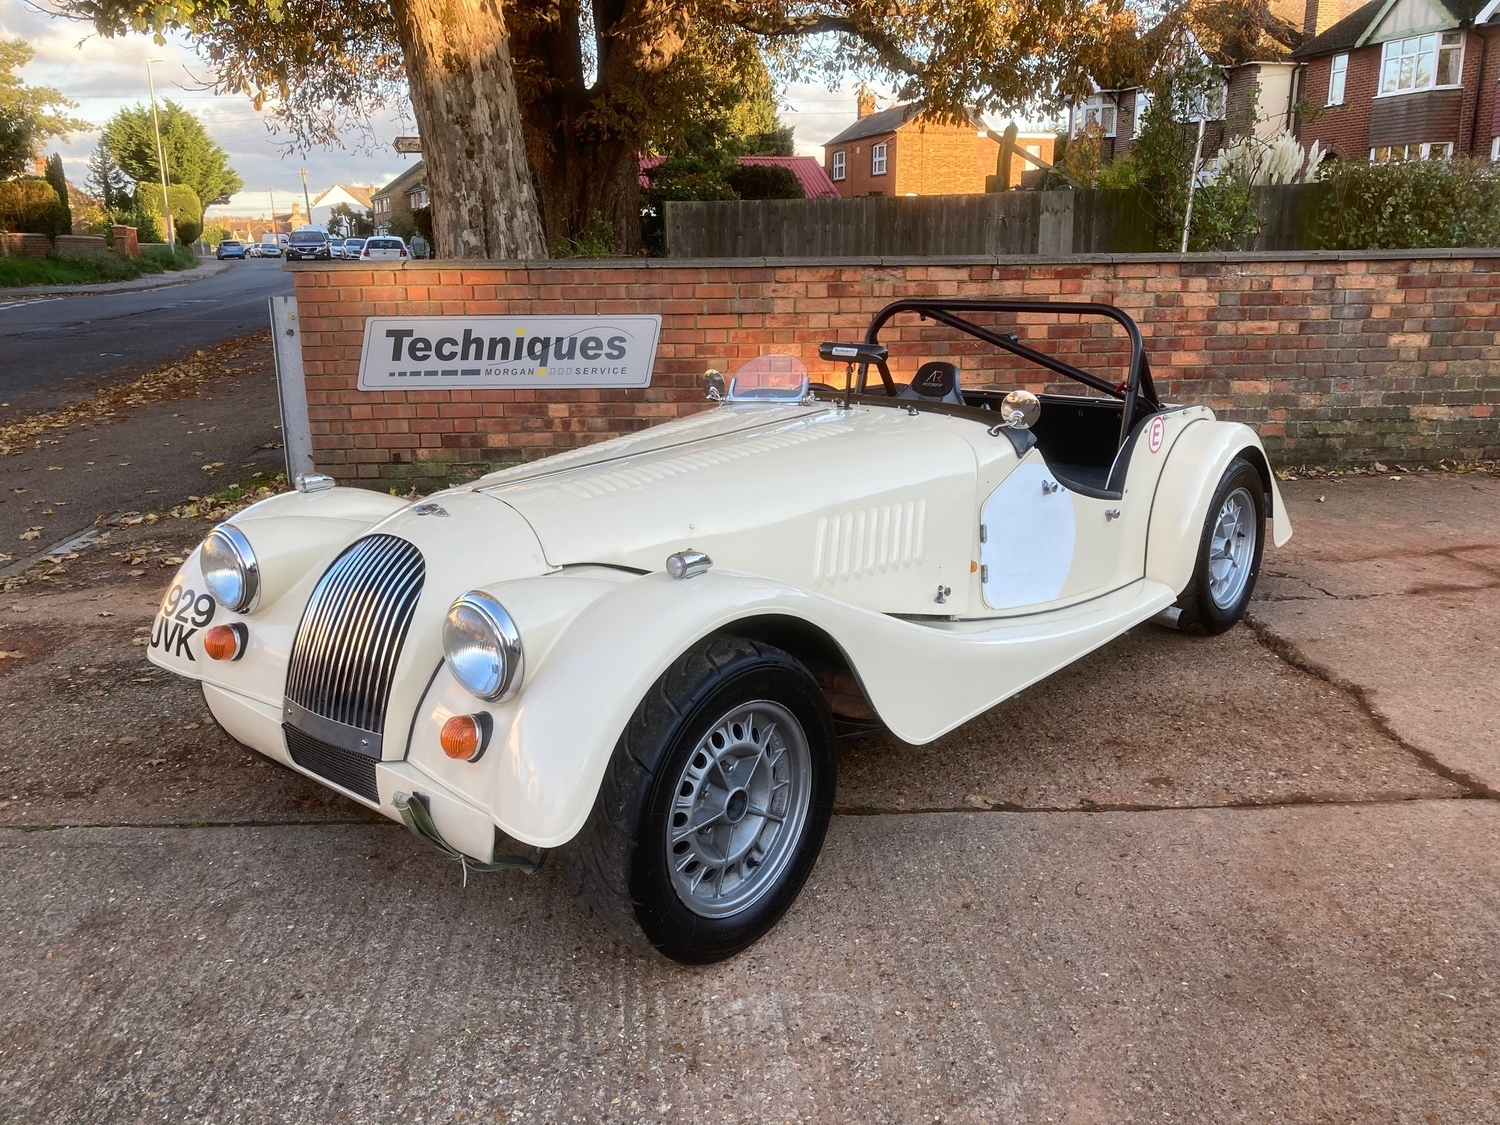 1992 Morgan +8 (PRE CAT) for road or competition - £26,995.00 (Reduced price)